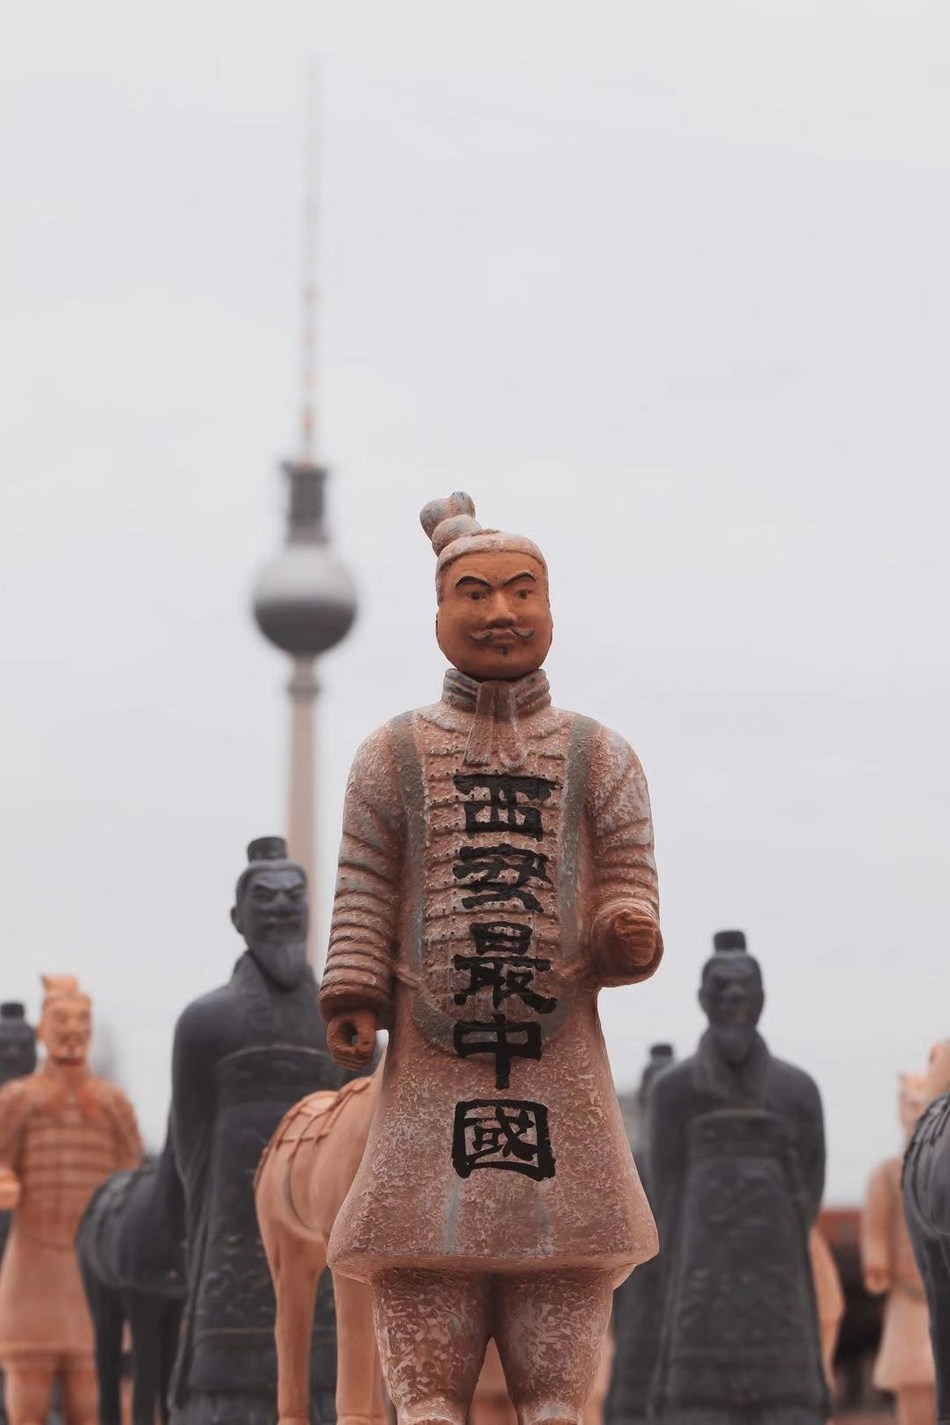 """A terracotta warrior with """"Xi'an Best Representation of China"""" shown in front of notable Berlin landmark, the TV Tower"""